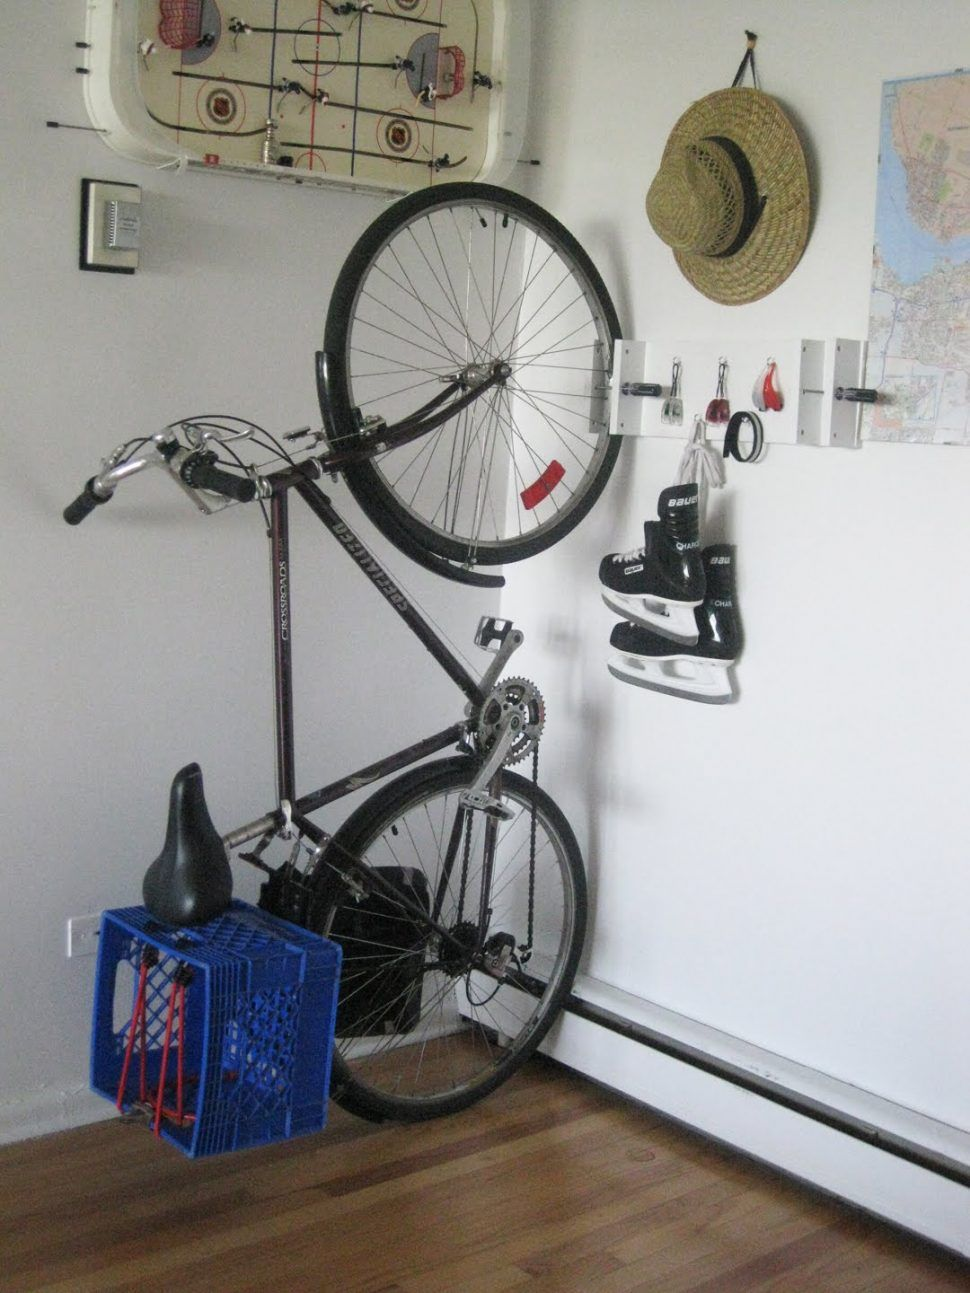 Decoration Ikea Wall Rack Cycle Storage Ideas Indoor Wall Mounted